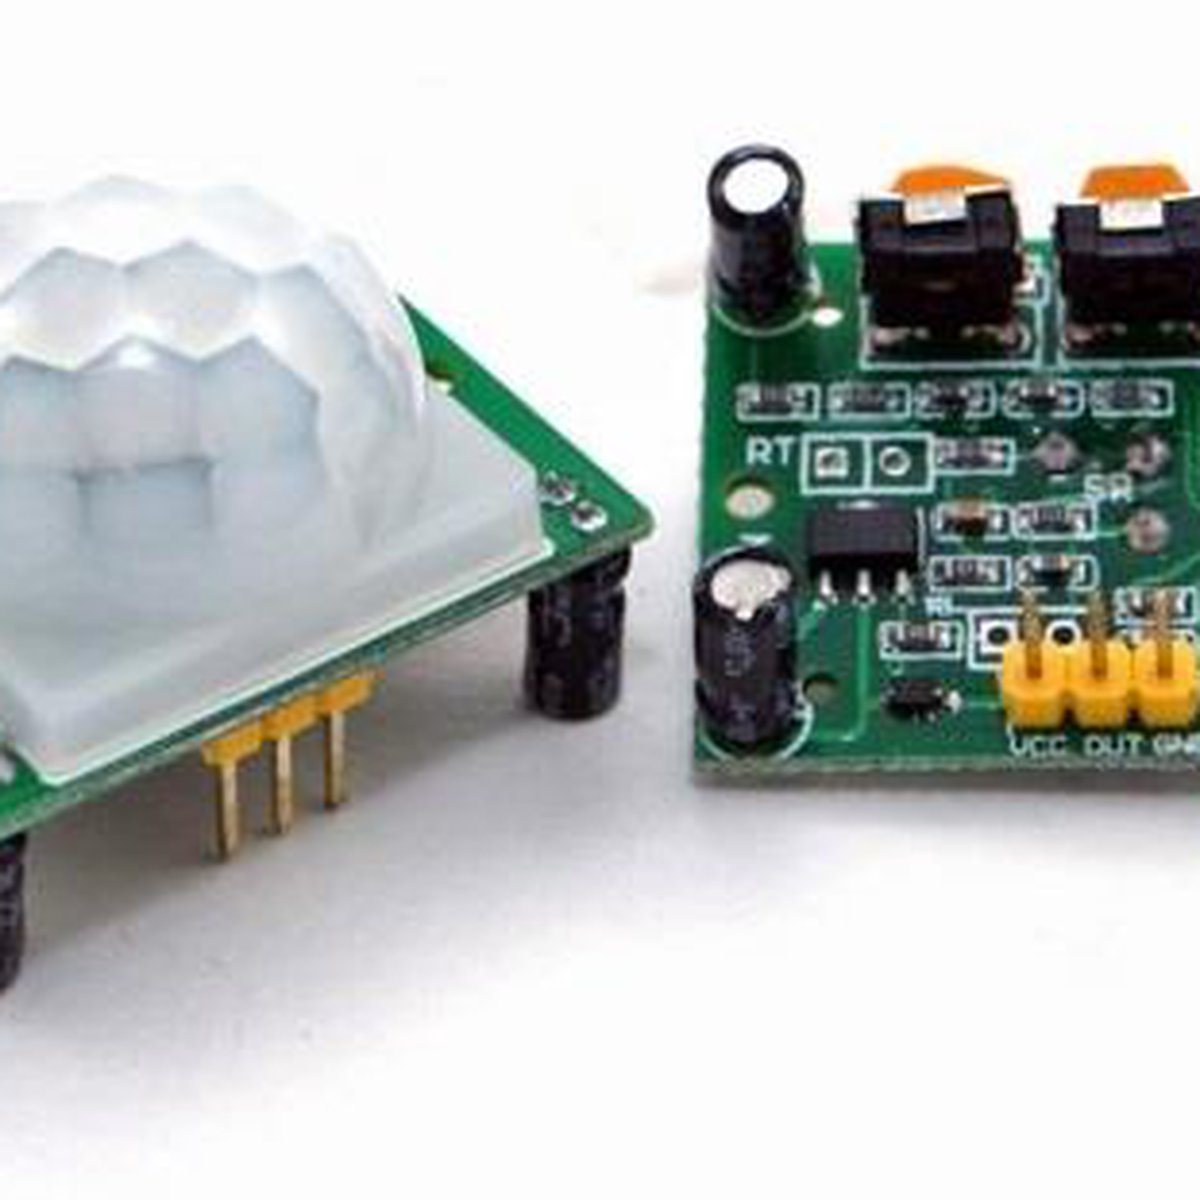 Passive Infrared Motion Sensor Hc Sr501 From Burgessworld Custom Degree Electronics Forum Circuits Projects And Microcontrollers On Tindie